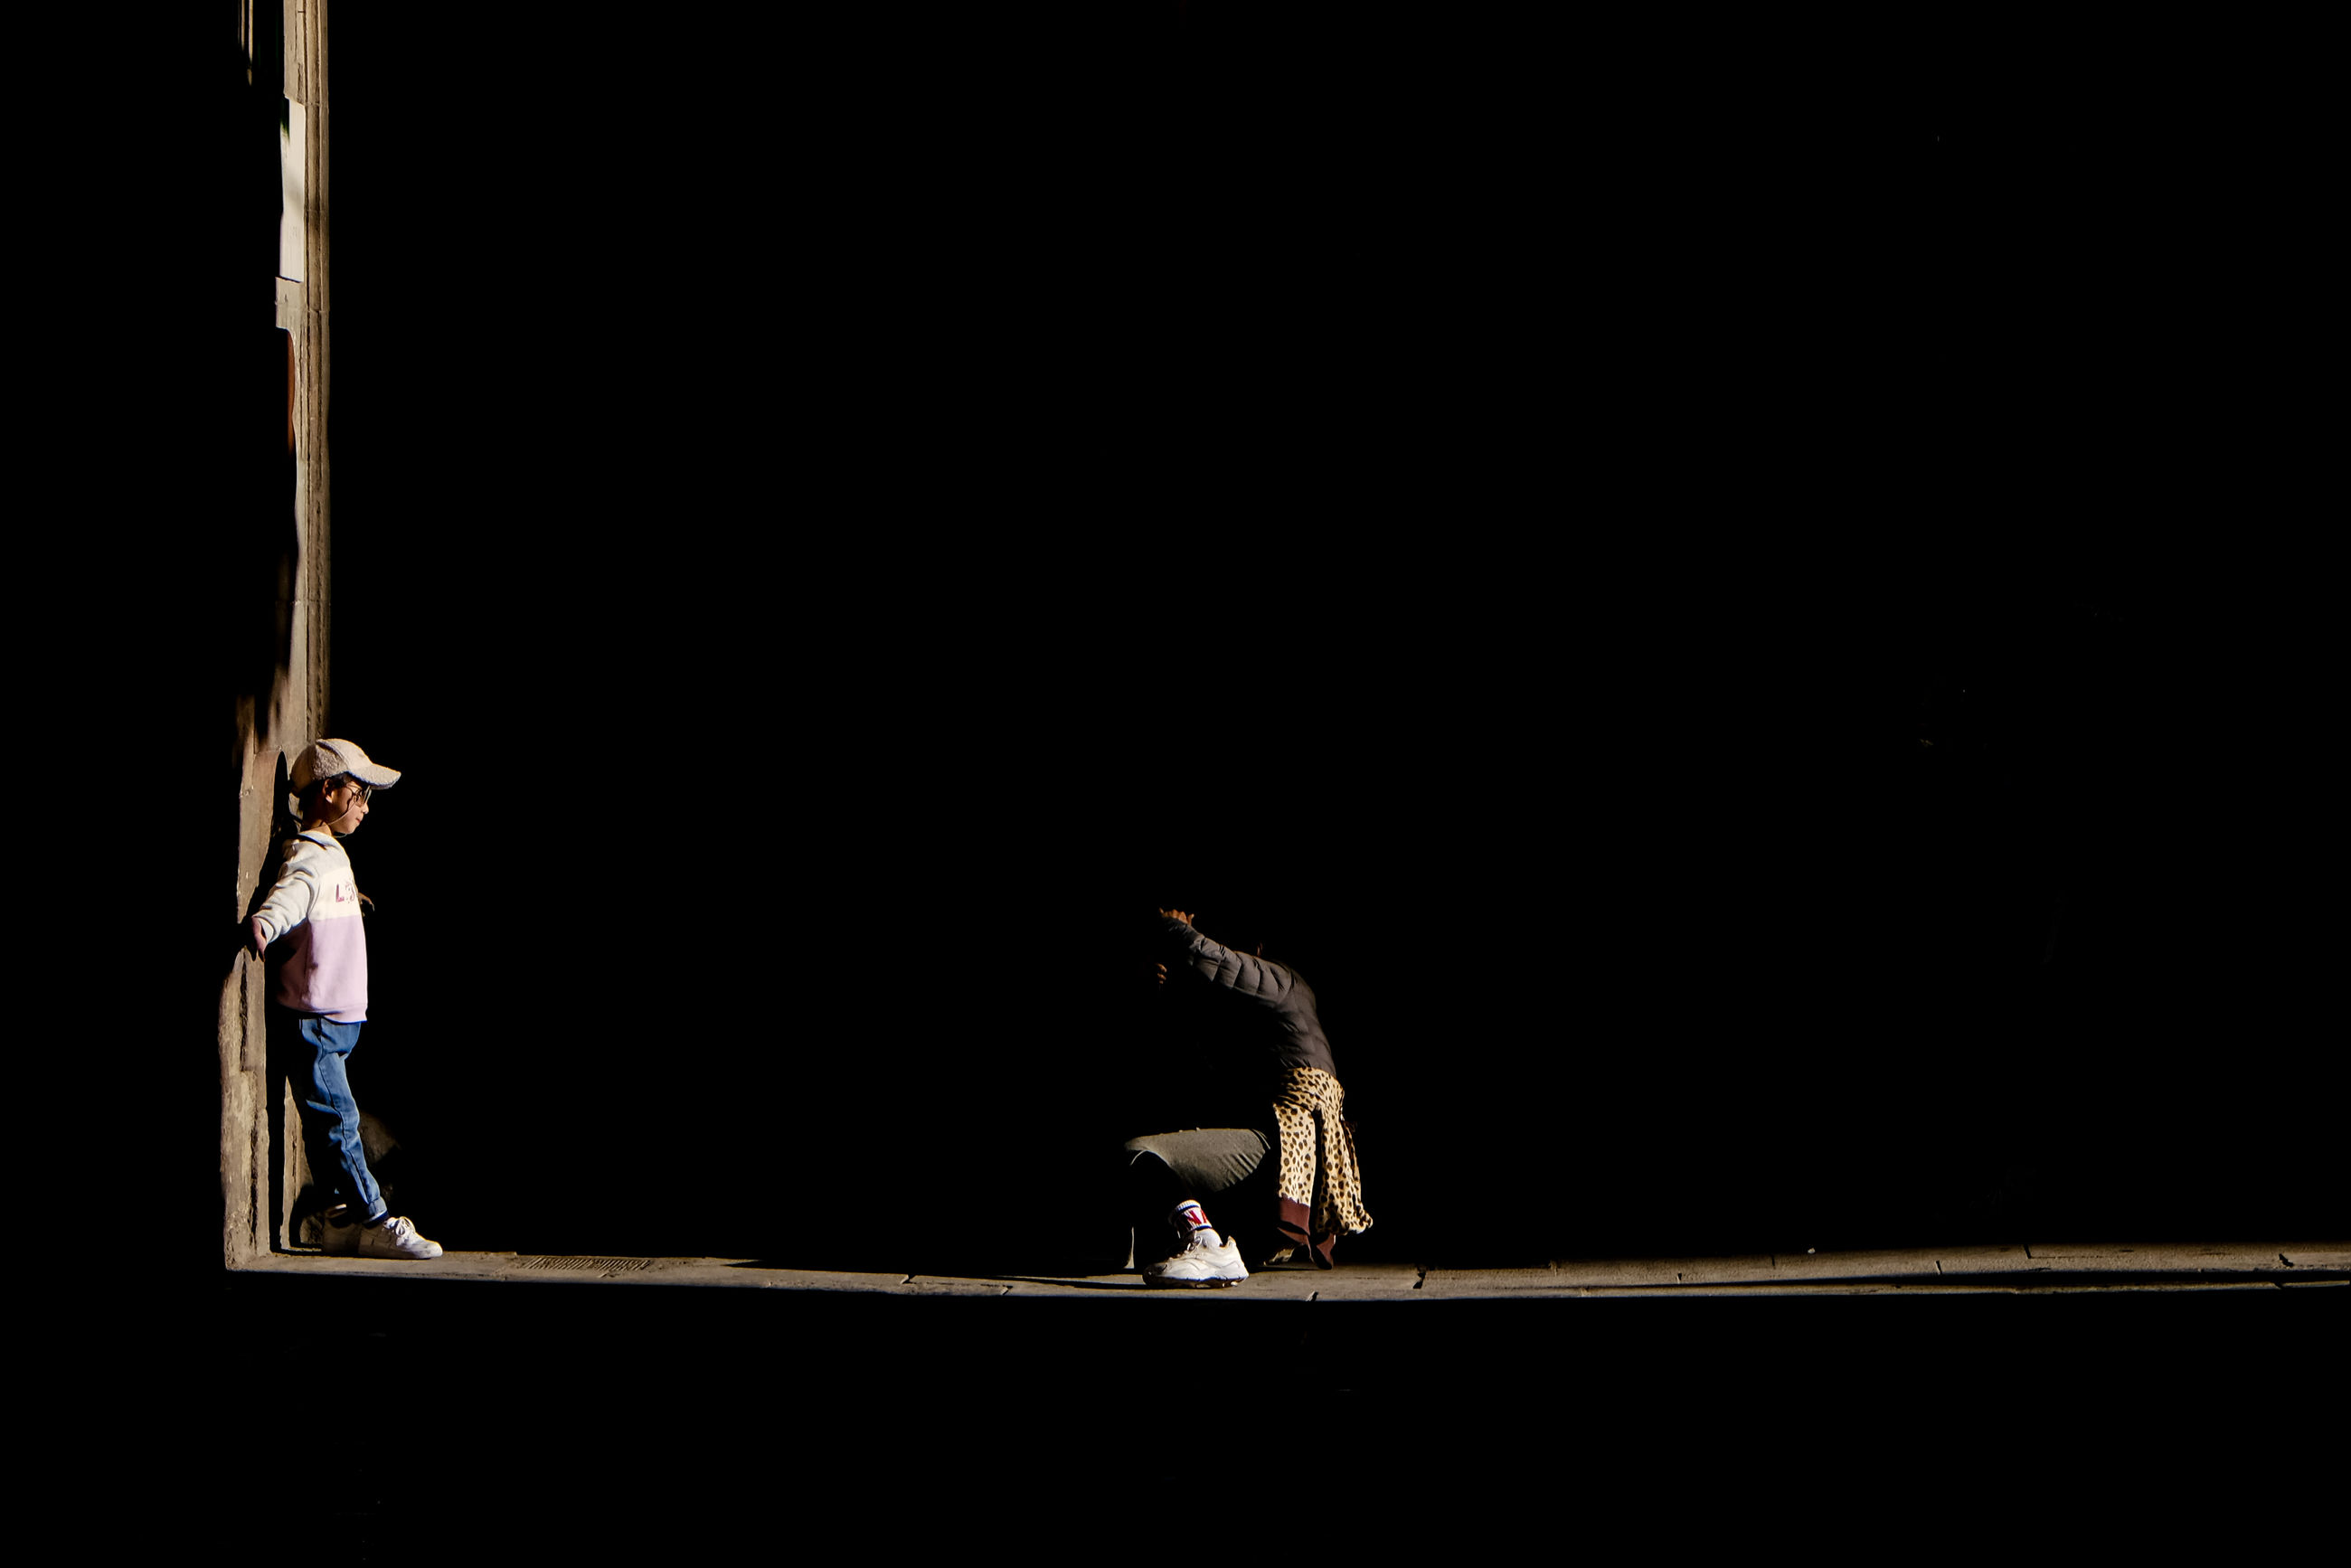 balance, skill, two people, full length, performance, real people, lifestyles, copy space, strength, arts culture and entertainment, flexibility, exercising, indoors, sport, people, women, practicing, adult, men, healthy lifestyle, black background, dark, stage, arms raised, human arm, effort, gymnastics